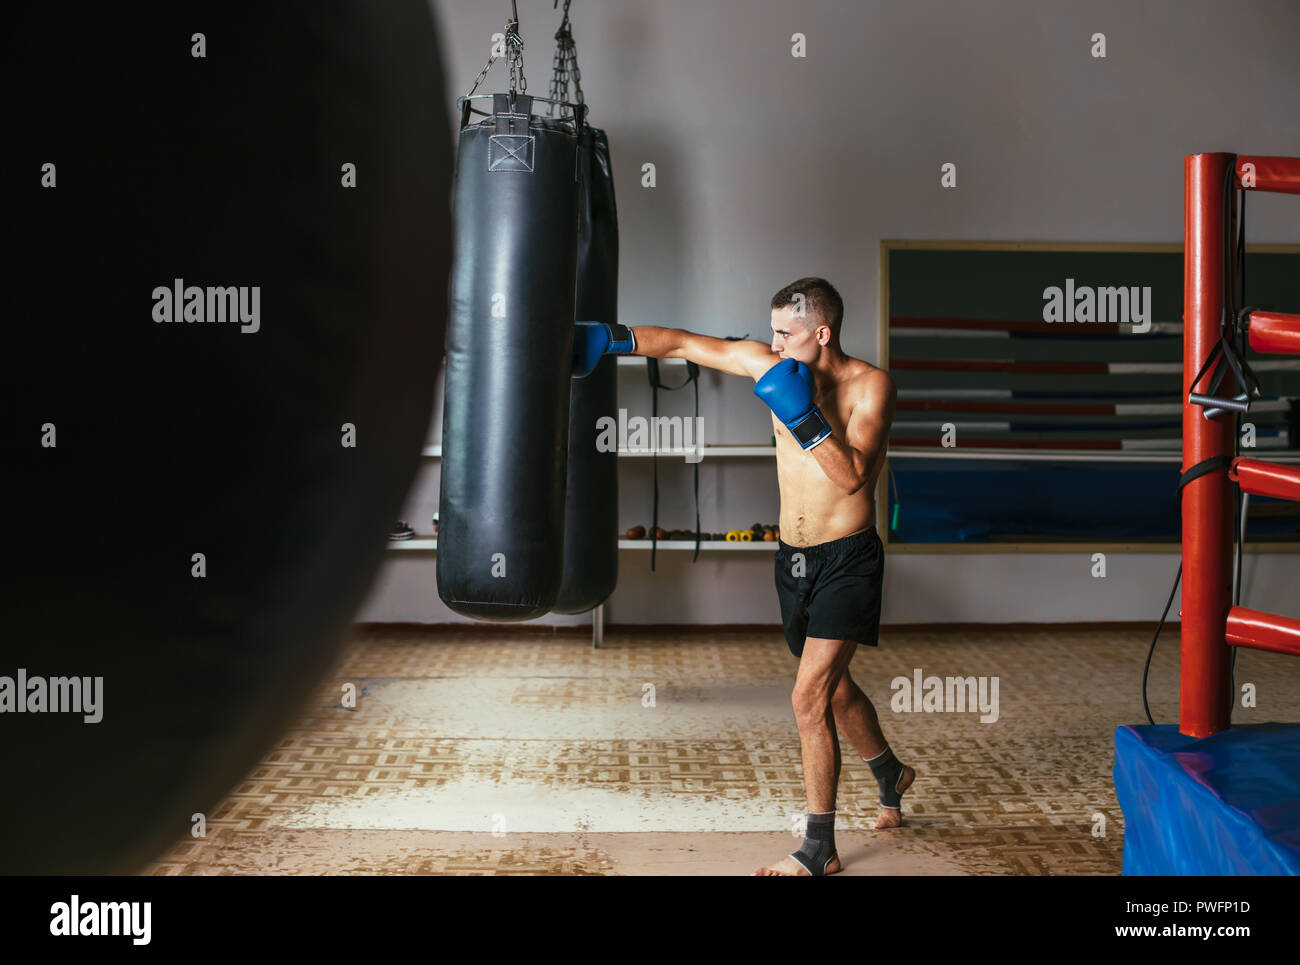 Male boxer hitting punching bag at a boxing studio. Sport training concept - Stock Image